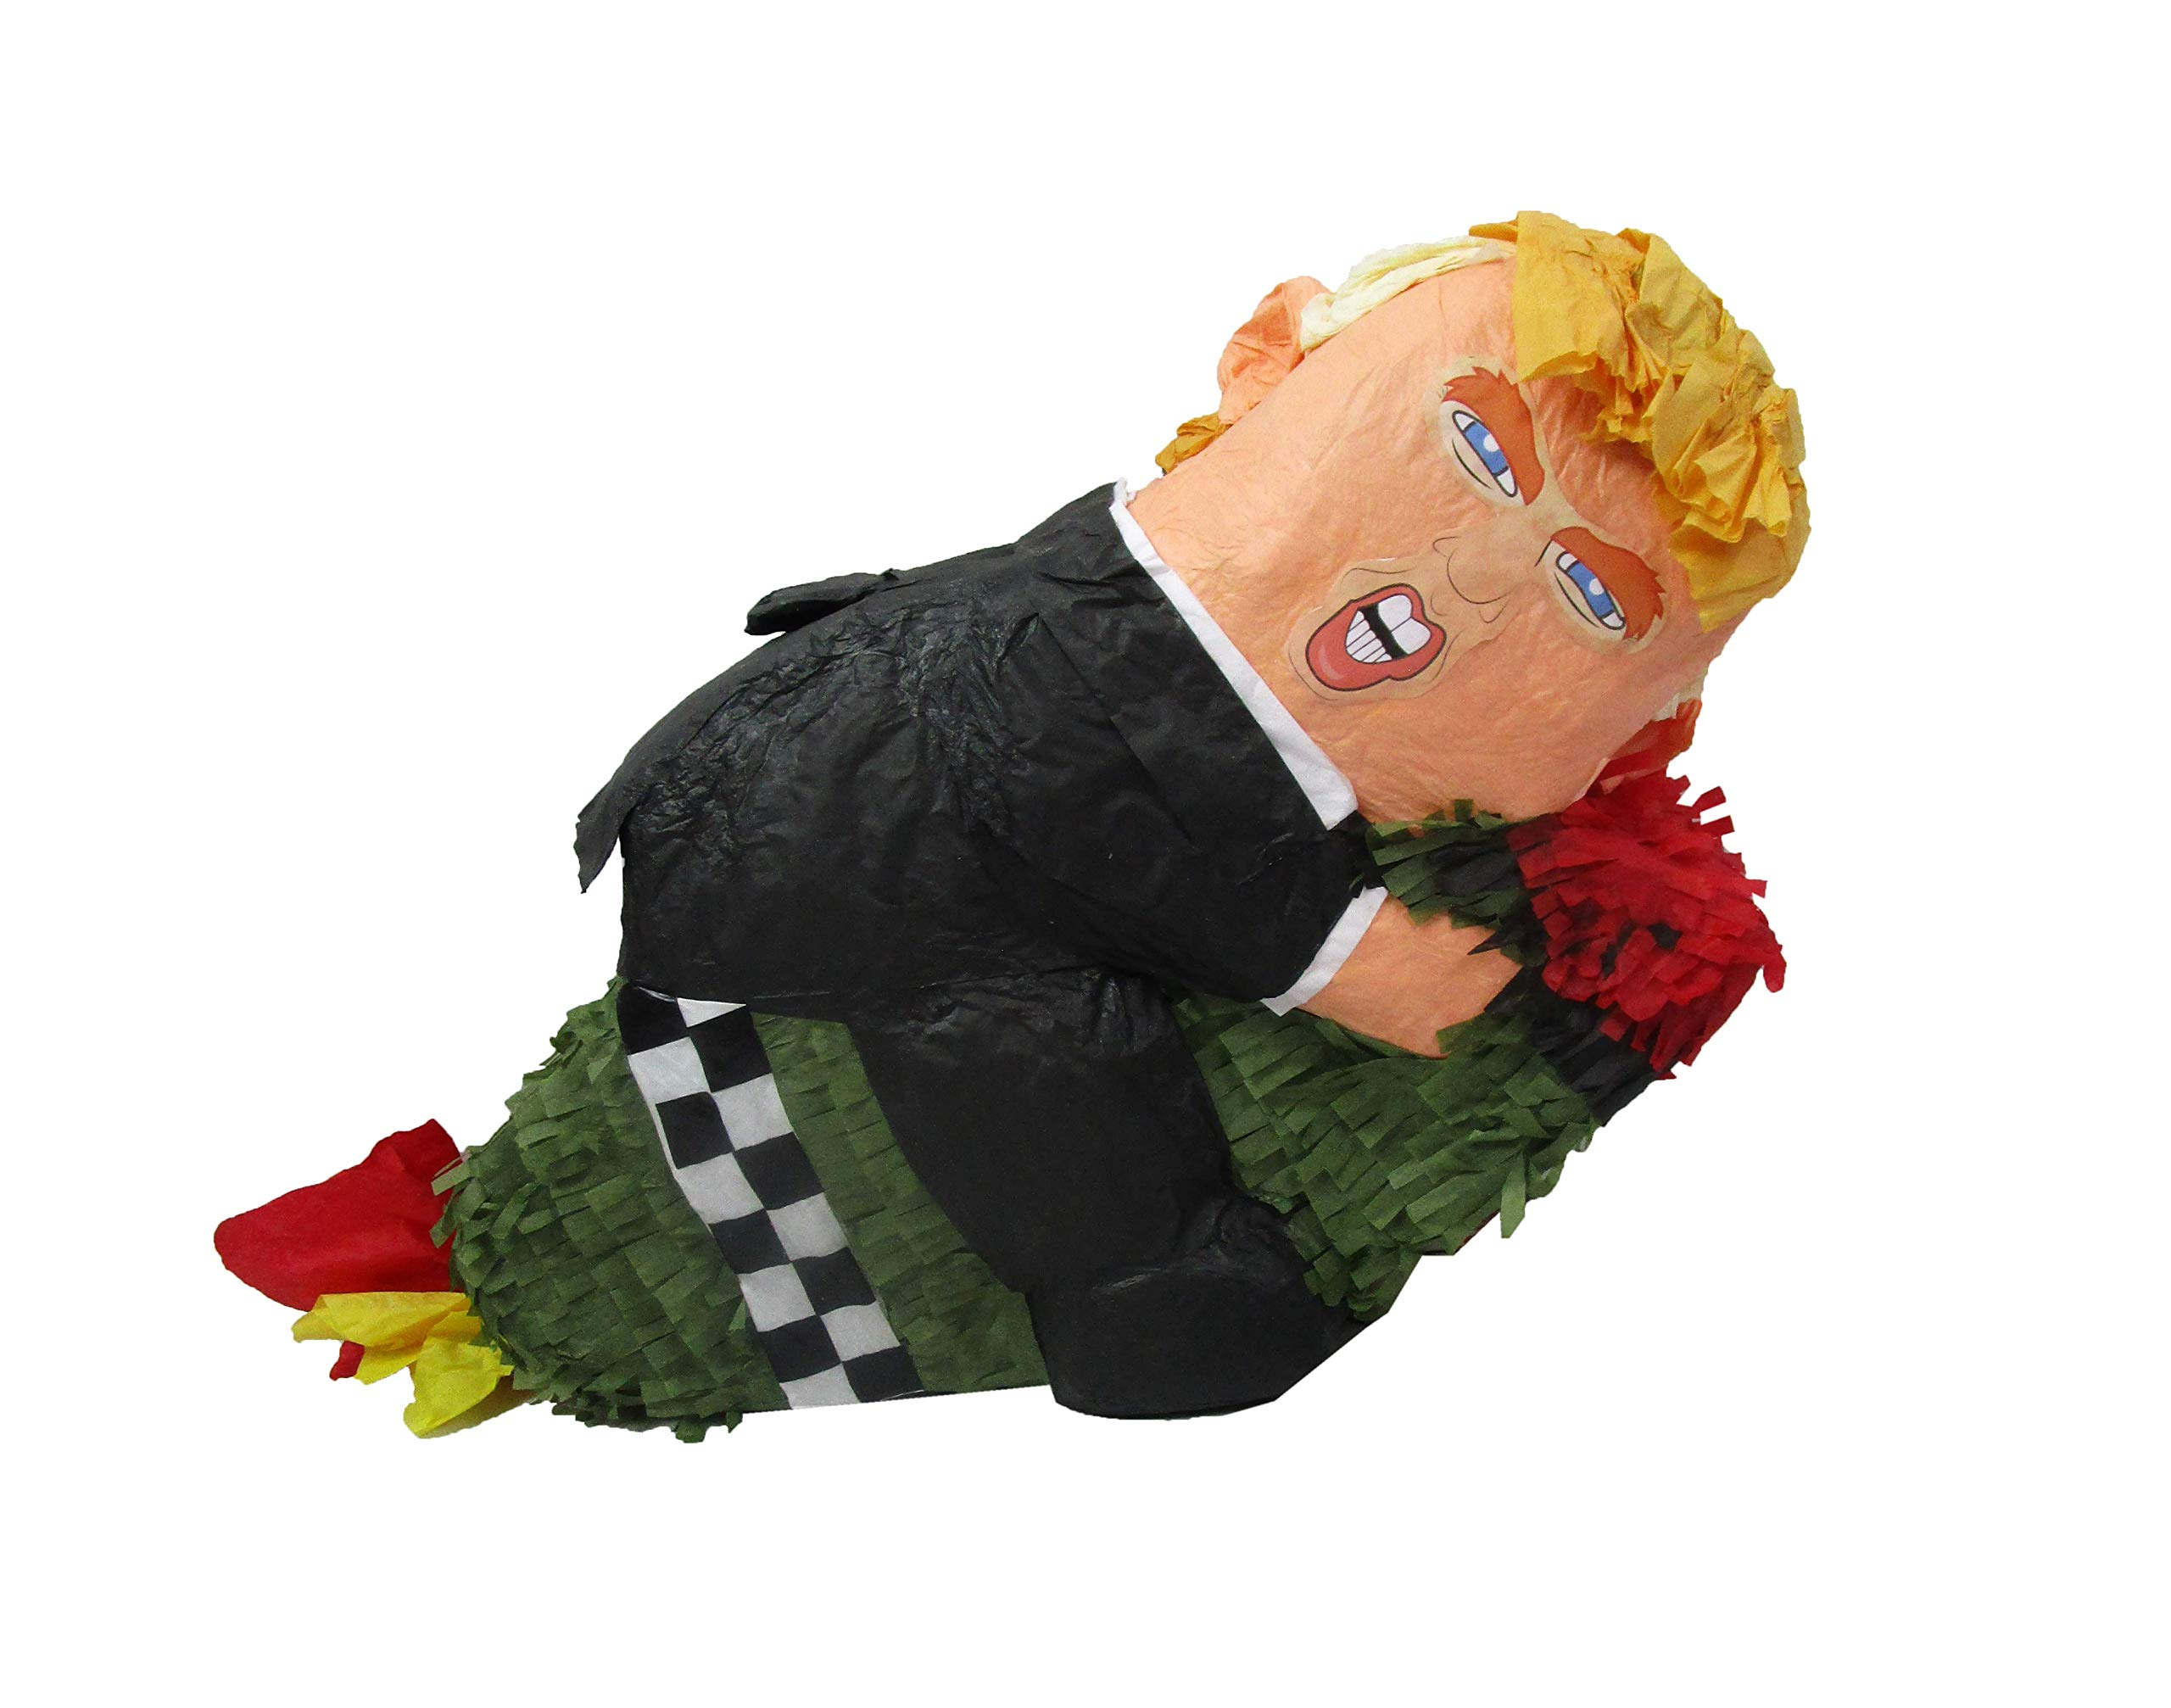 Trump on Missile Party Pinata - Game, Photo Prop, Decoration Centerpiece and Gag Gift, Handmade Paper Craft